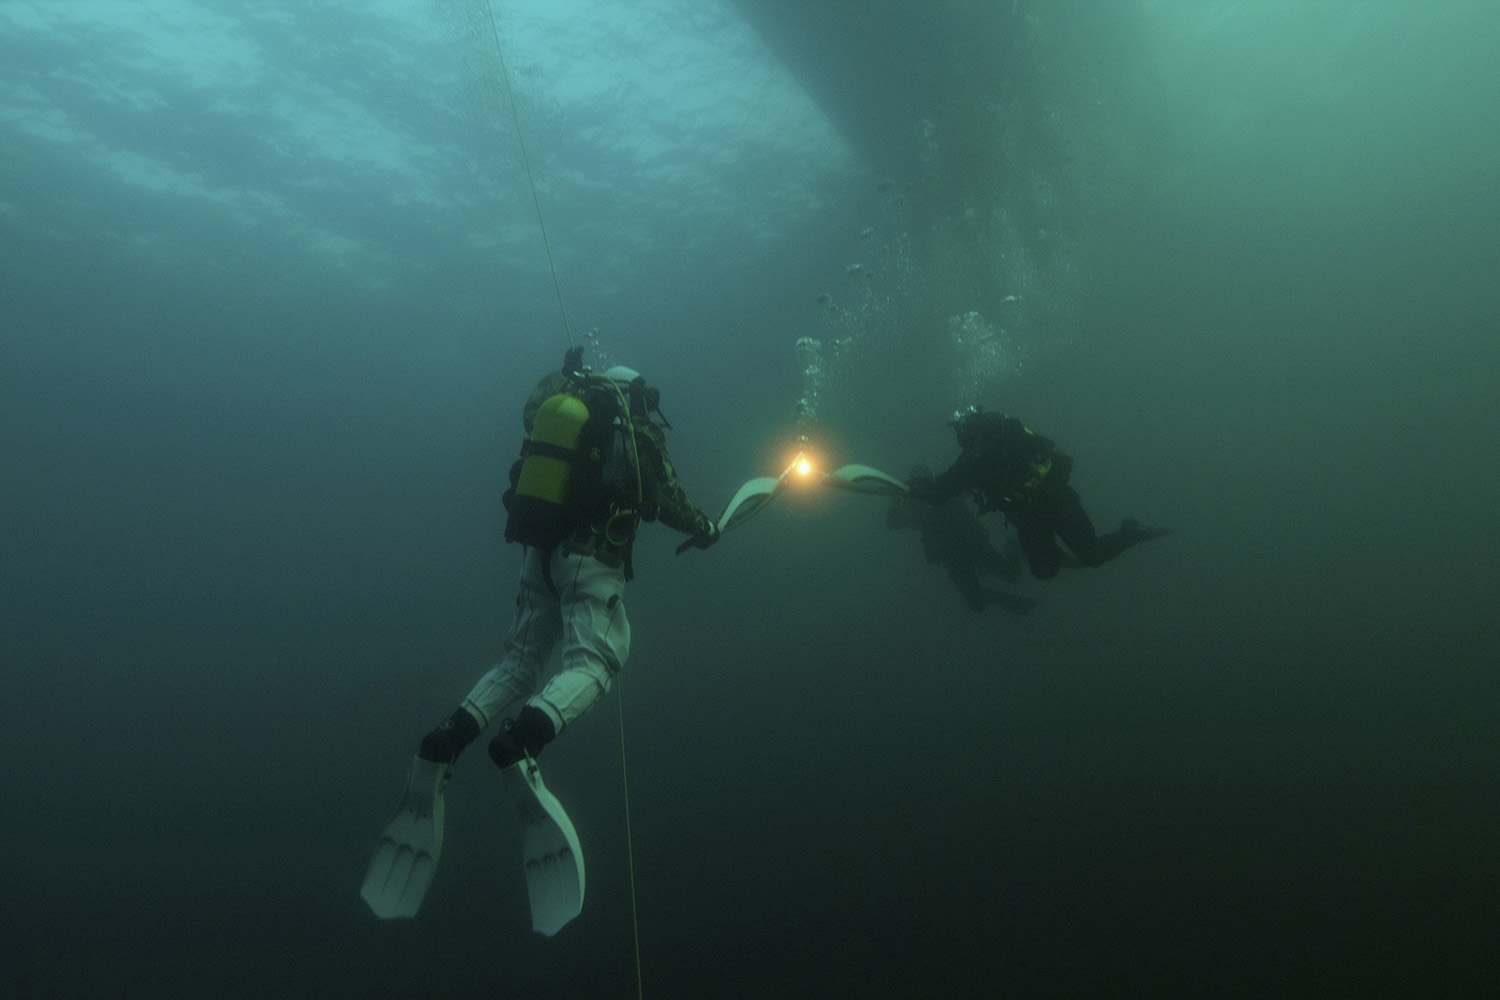 Undated. In this photo provided by the Organizing Committee Sochi 2014, diving torchbearers are seen during the Sochi 2014 Winter Olympic torch relay underwater in Lake Baikal, Russia.